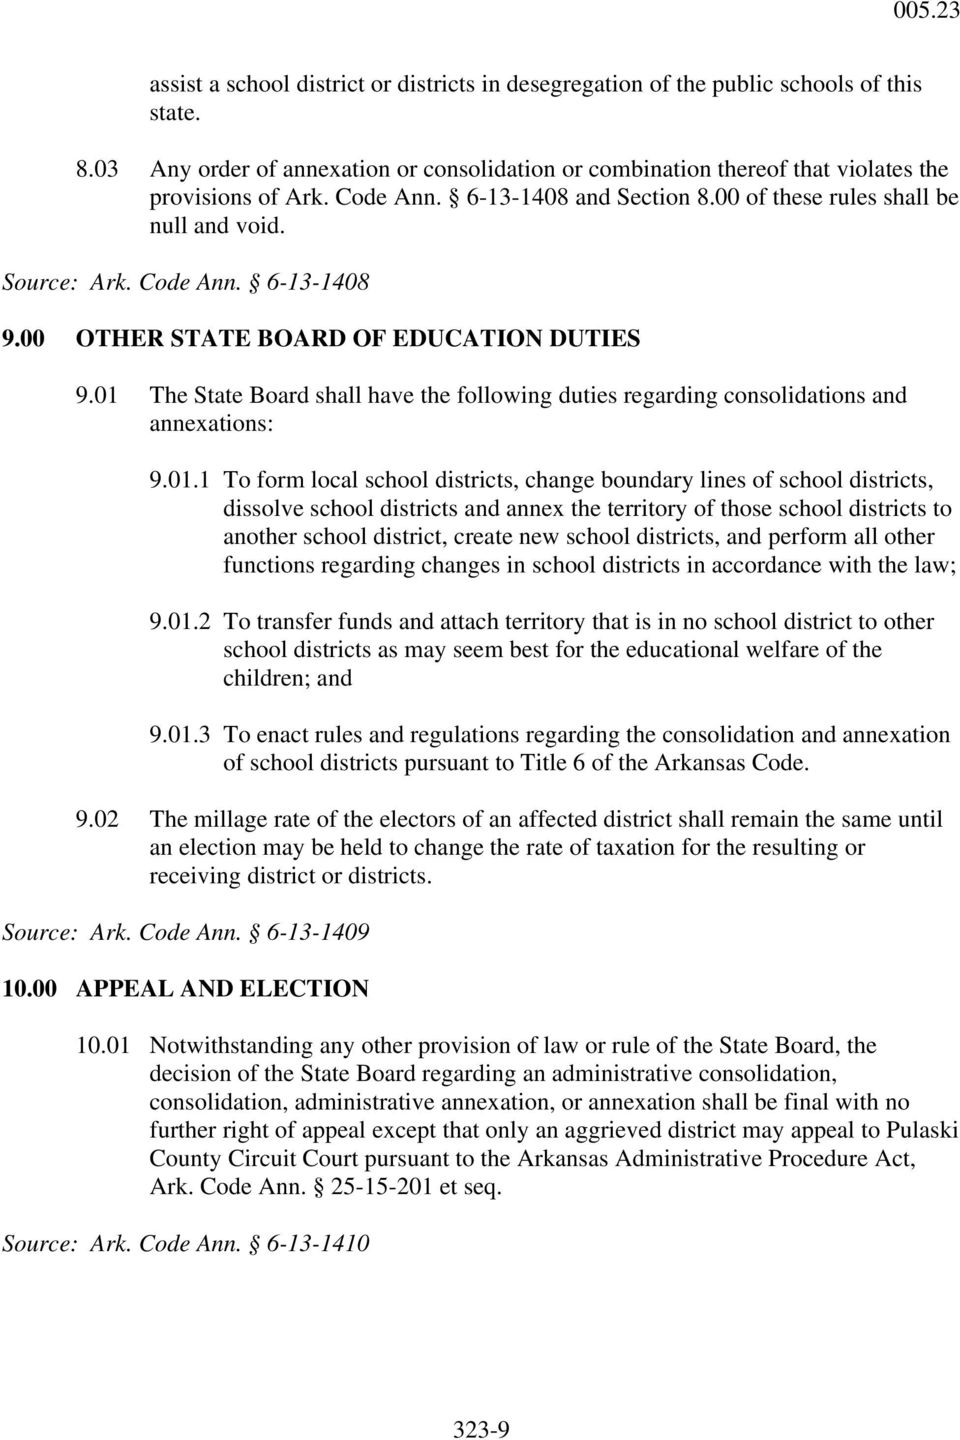 01 The State Board shall have the following duties regarding consolidations and annexations: 9.01.1 To form local school districts, change boundary lines of school districts, dissolve school